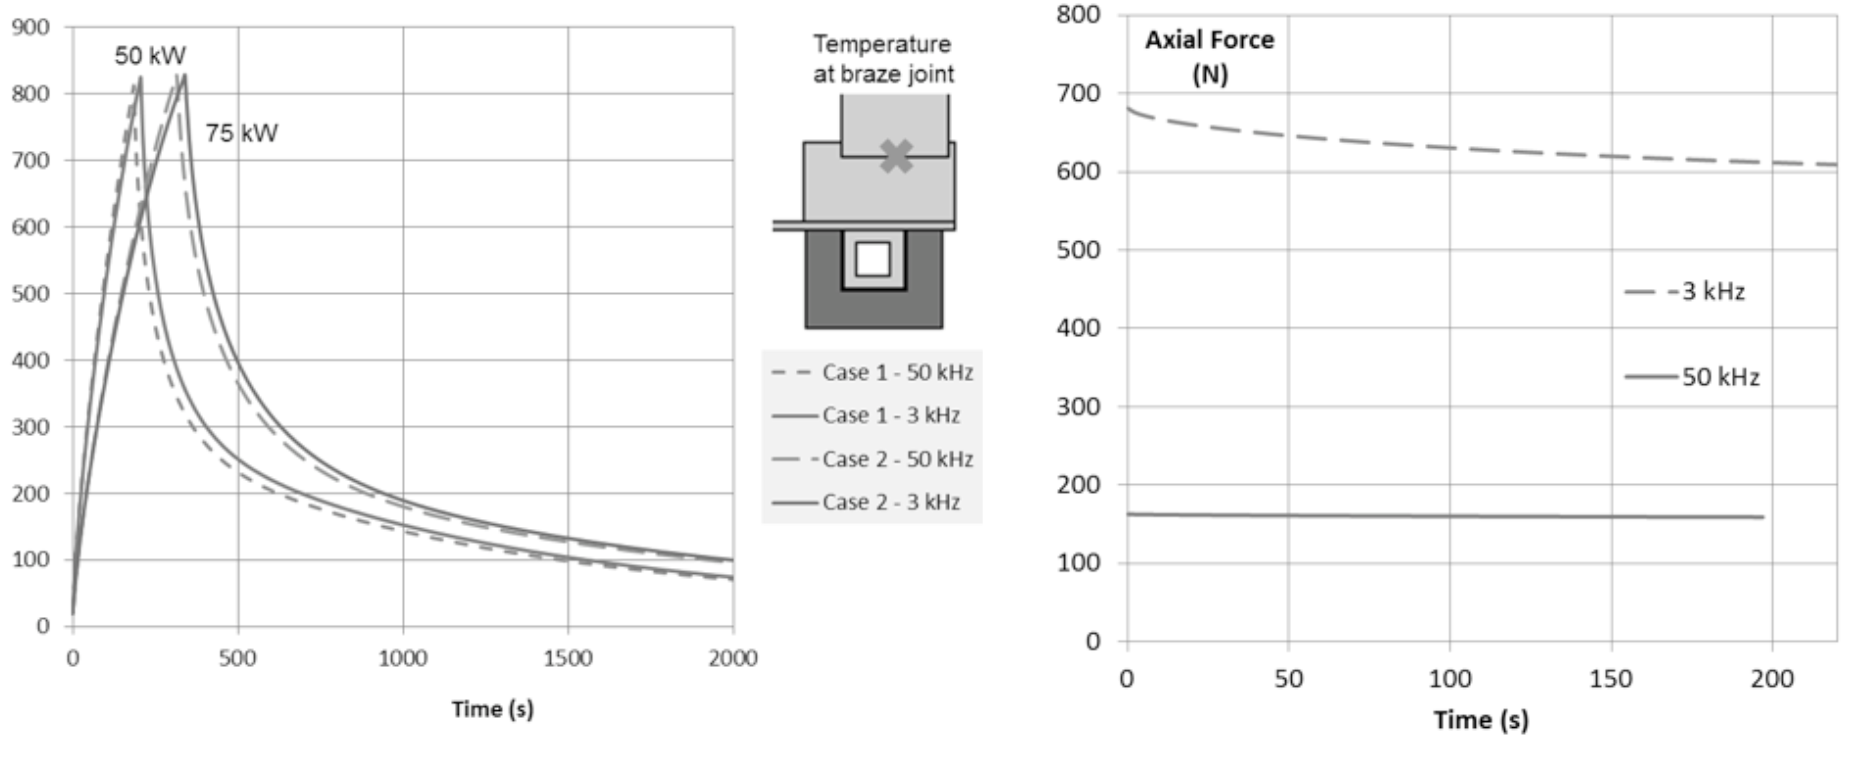 Fluxtrol Simulation of Induction System for Brazing of Squirrel Cage Rotor - Figure 6: Temperature change in the joint area of the rod and the ring during heating and cooling (left) and vertical forces acting on the rotor at 50 kW power (right).